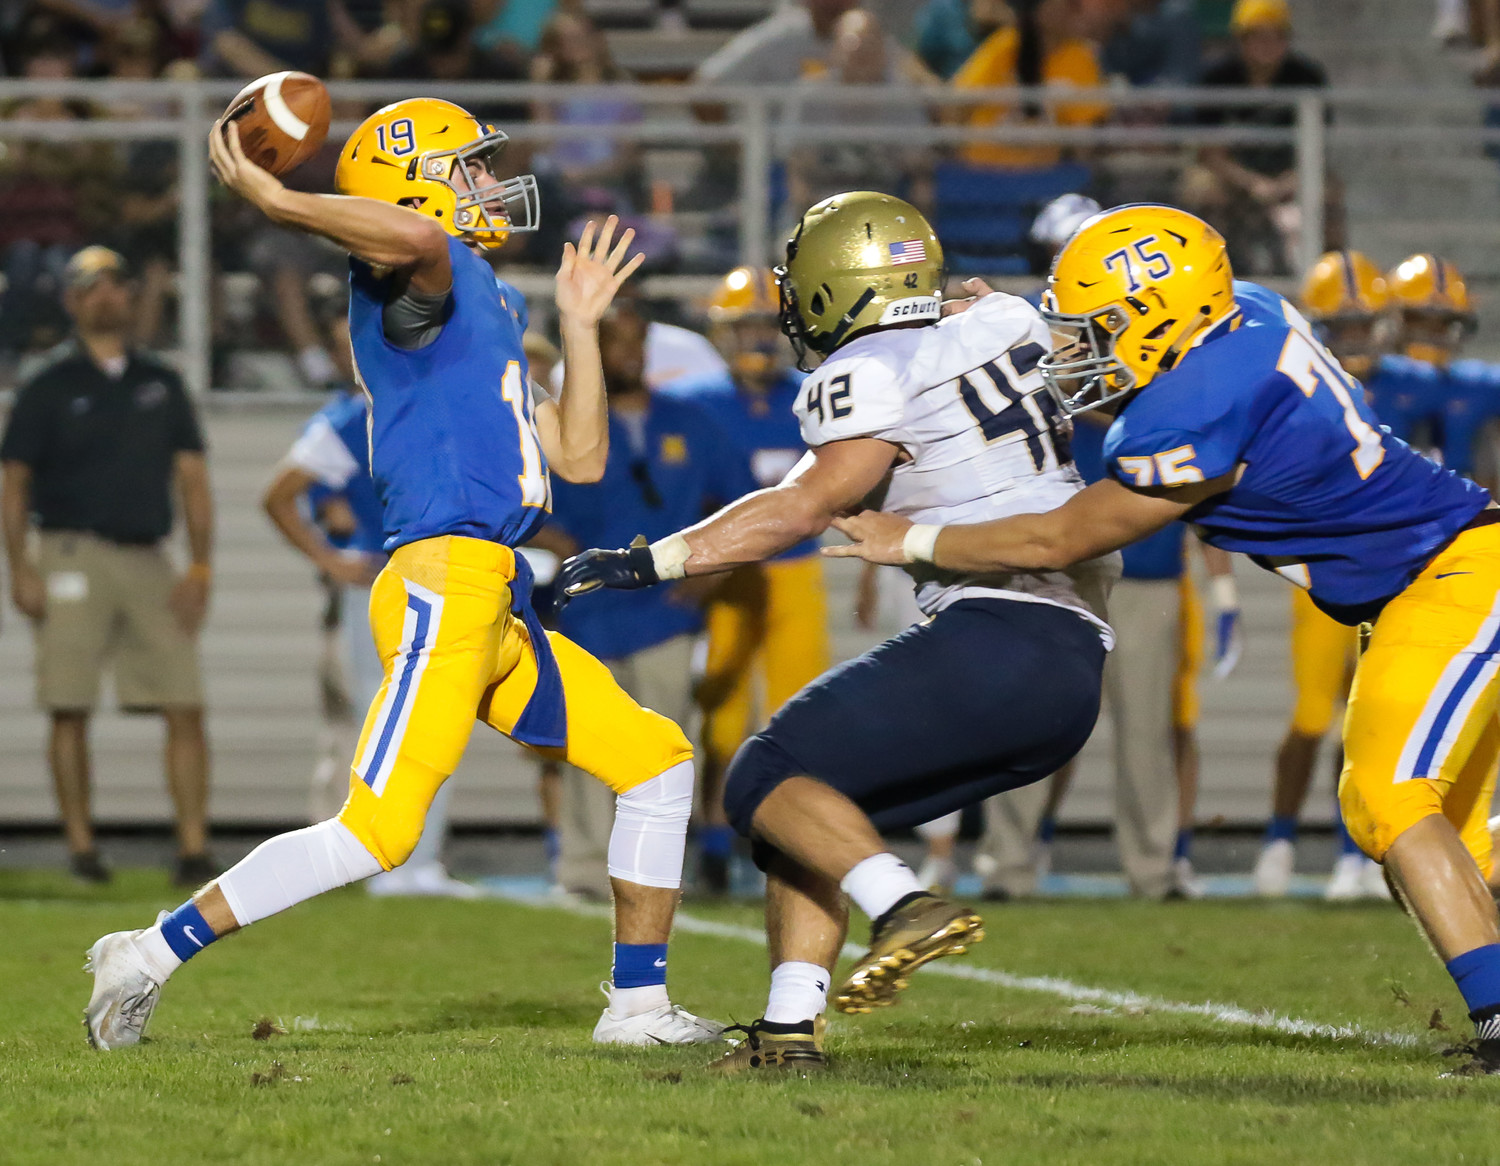 Scott Ash fires a pass for the Blue Raiders in Friday's 40-14 loss to Bishop McDevitt at War Memorial Field. No. 75 Morgan Billman does the blocking.